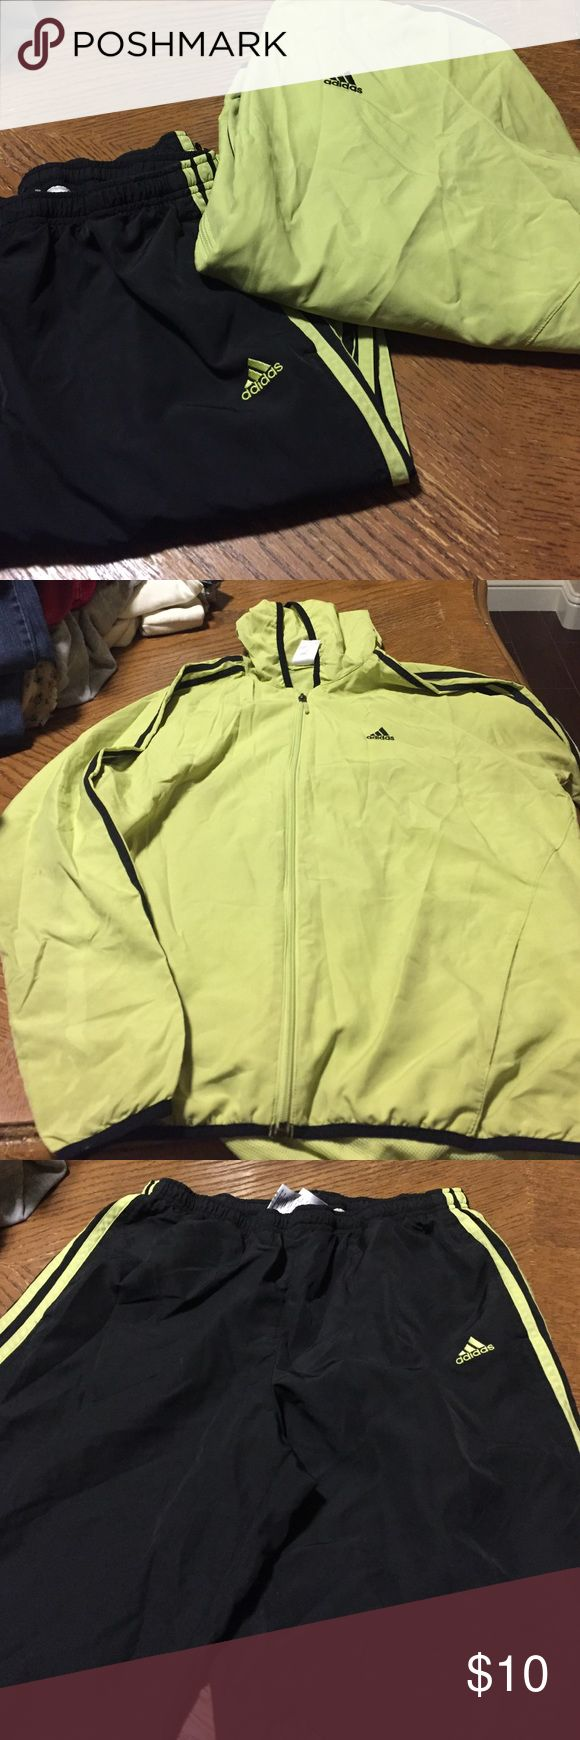 Adidas women's tracksuit Adidas women's tracksuit. Top is size XL. Bottom is size L. Small stains on the top shown in pictures. Lime color and black. Adidas Other